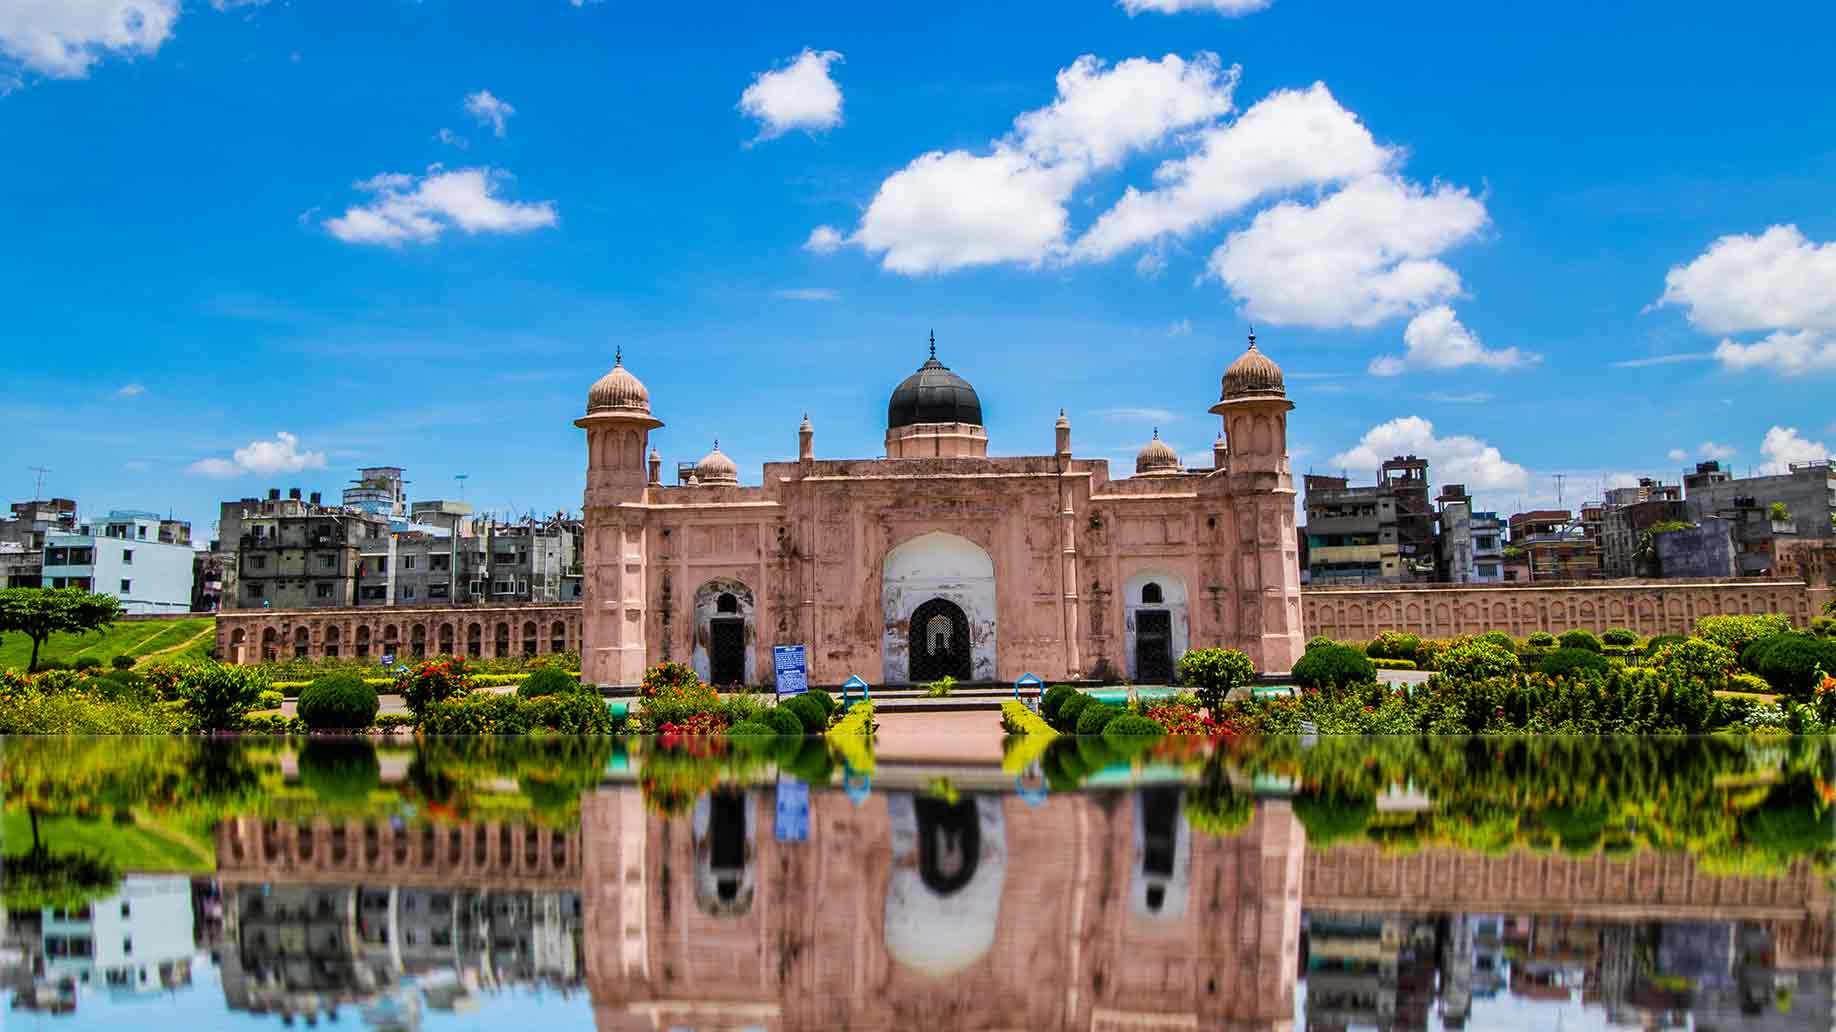 lalbagh fort dhaka bangladesh landmark reflection